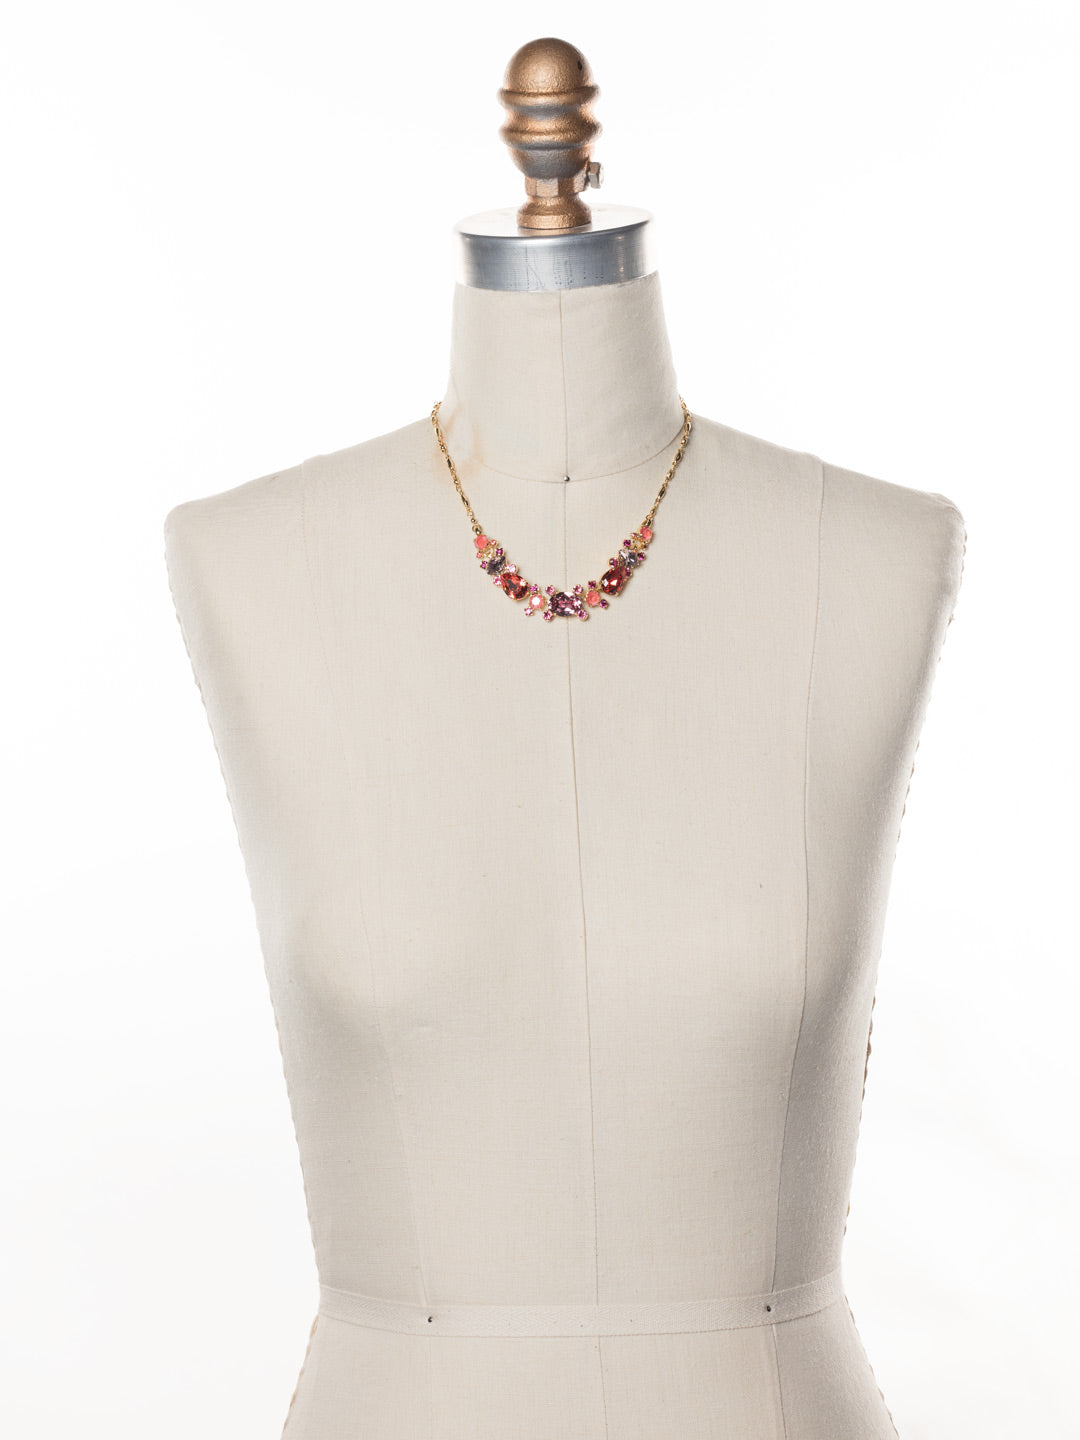 Laurel Statement Necklace - NDS49BGBGA